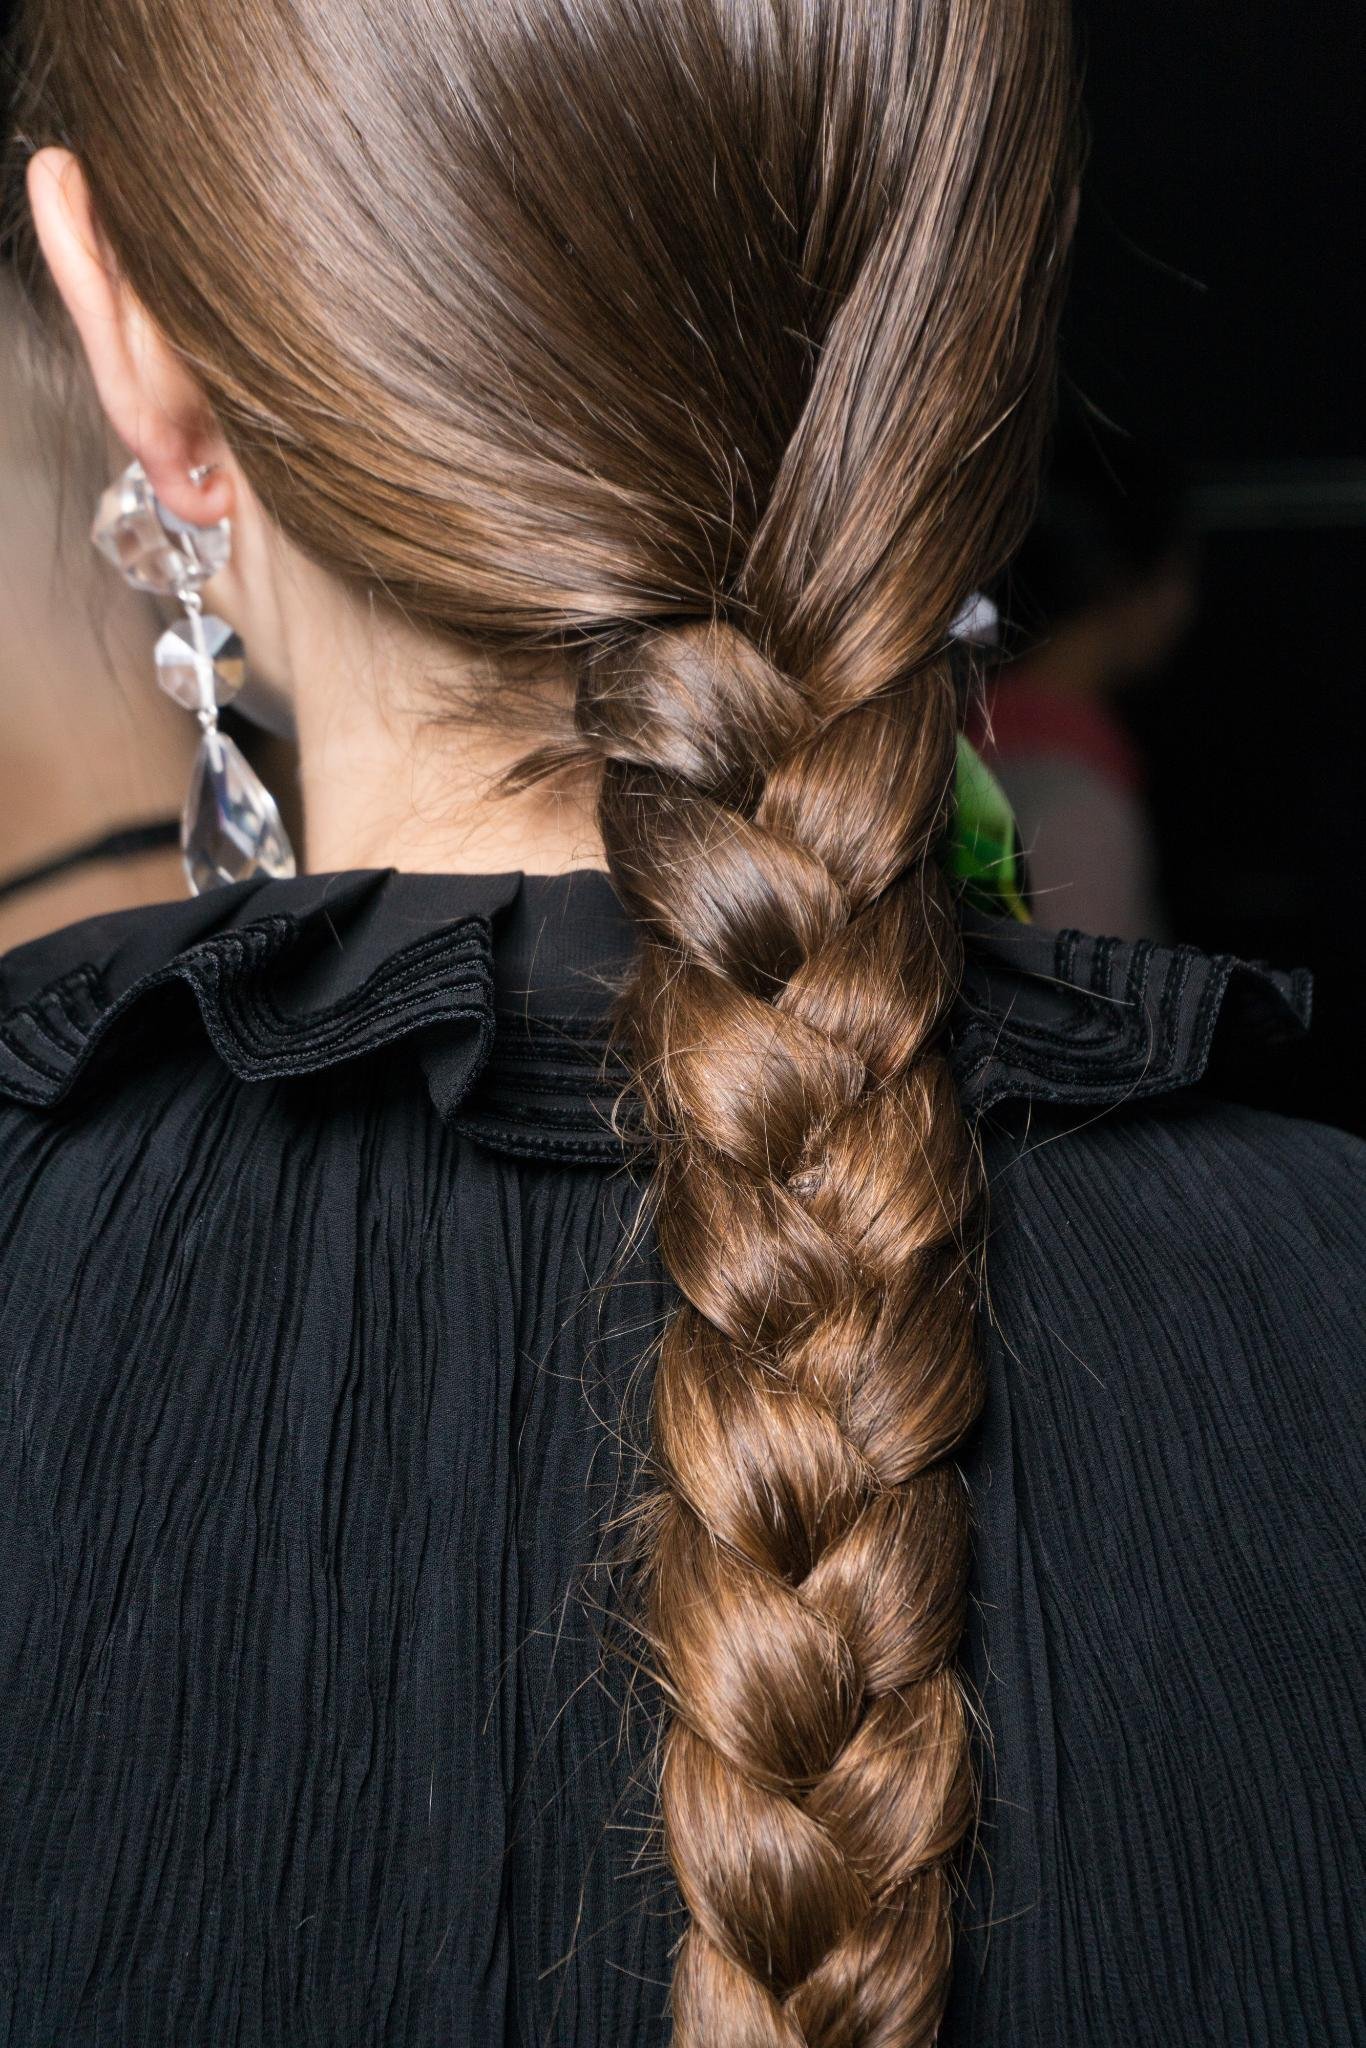 NYFW Catwalk Trends: Woman at Tory Nurch FW18 show with long brown hair in single three strand braid wearing a black top.